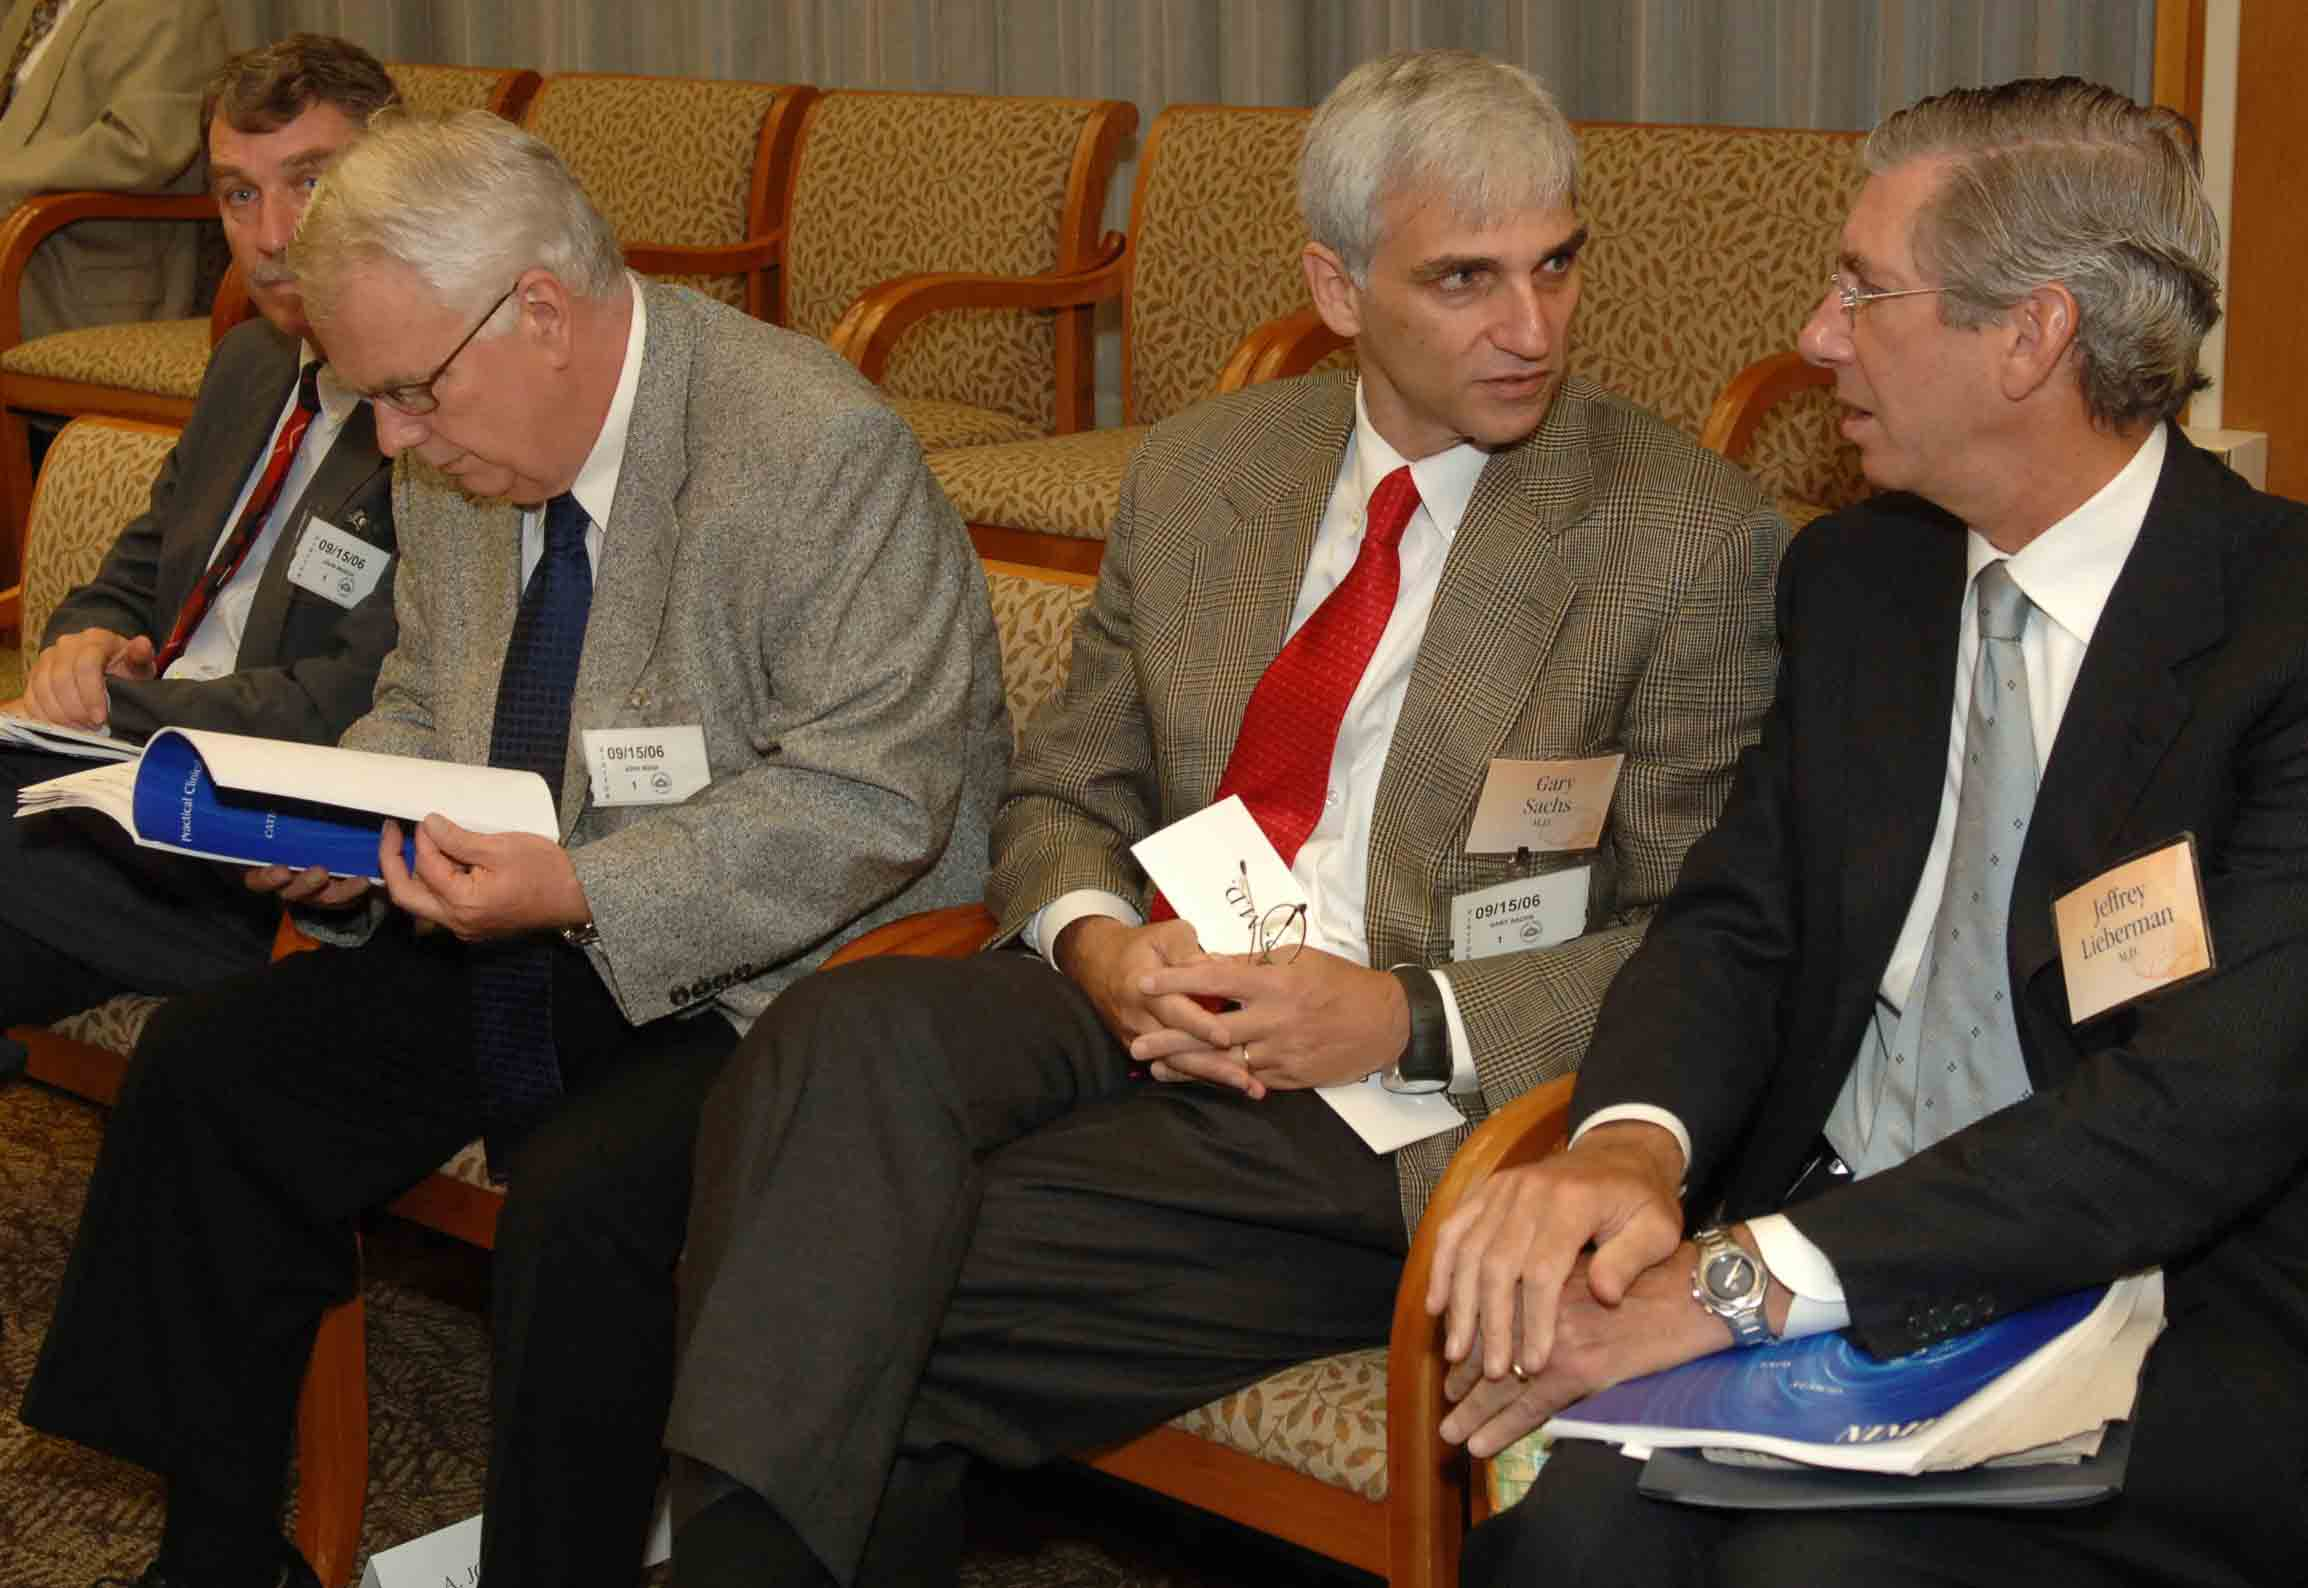 Photo of Doctors John March, A. John Rush, Gary Sachs, and Jeffrey Lieberman, clinical trial presenters